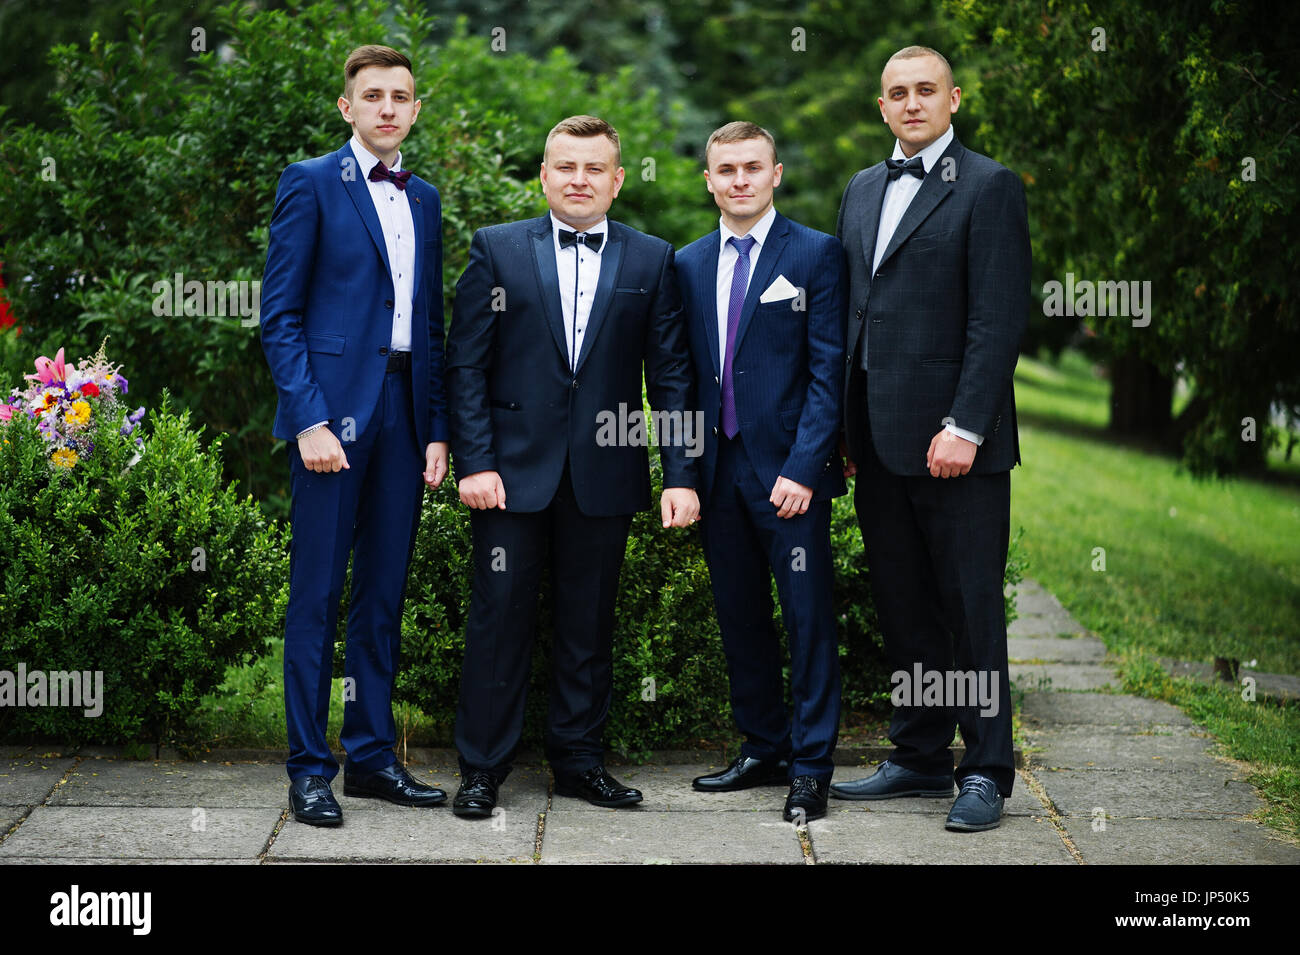 Four intelligent and handsome graduates in tuxedos posing on the graduation day. - Stock Image